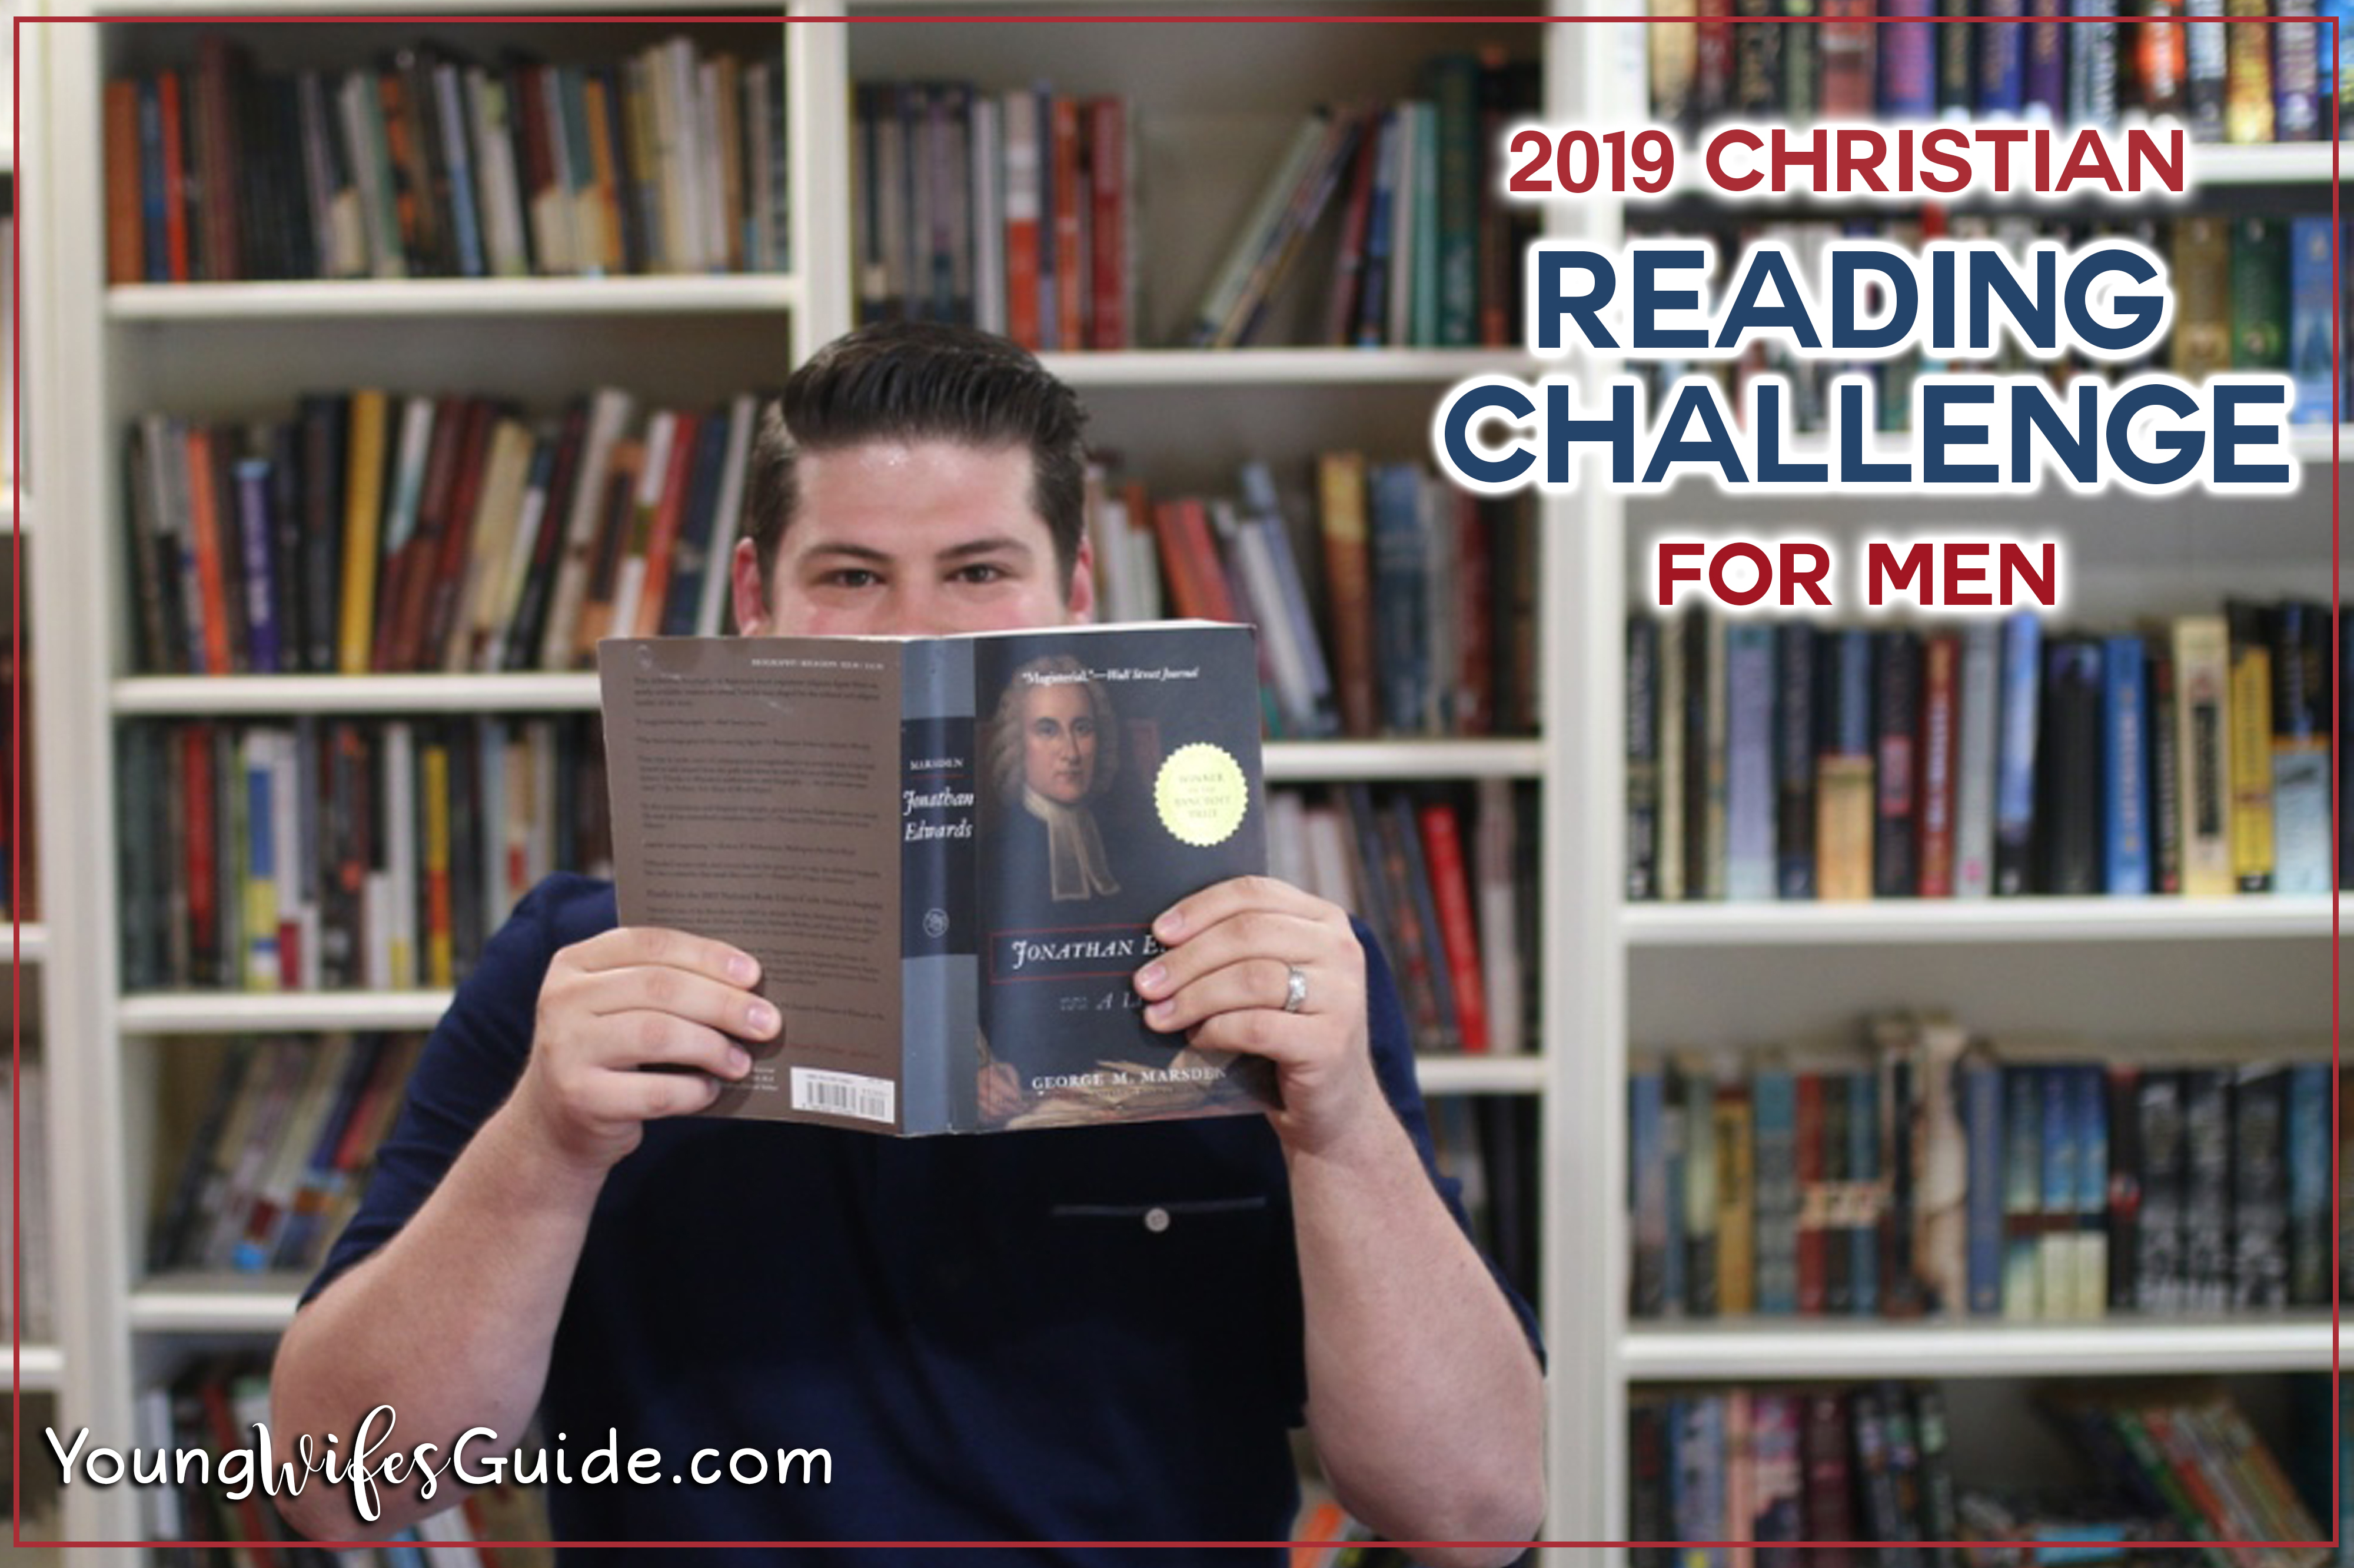 2019 Christian Reading Challenge for Men - Hf #185 - Young